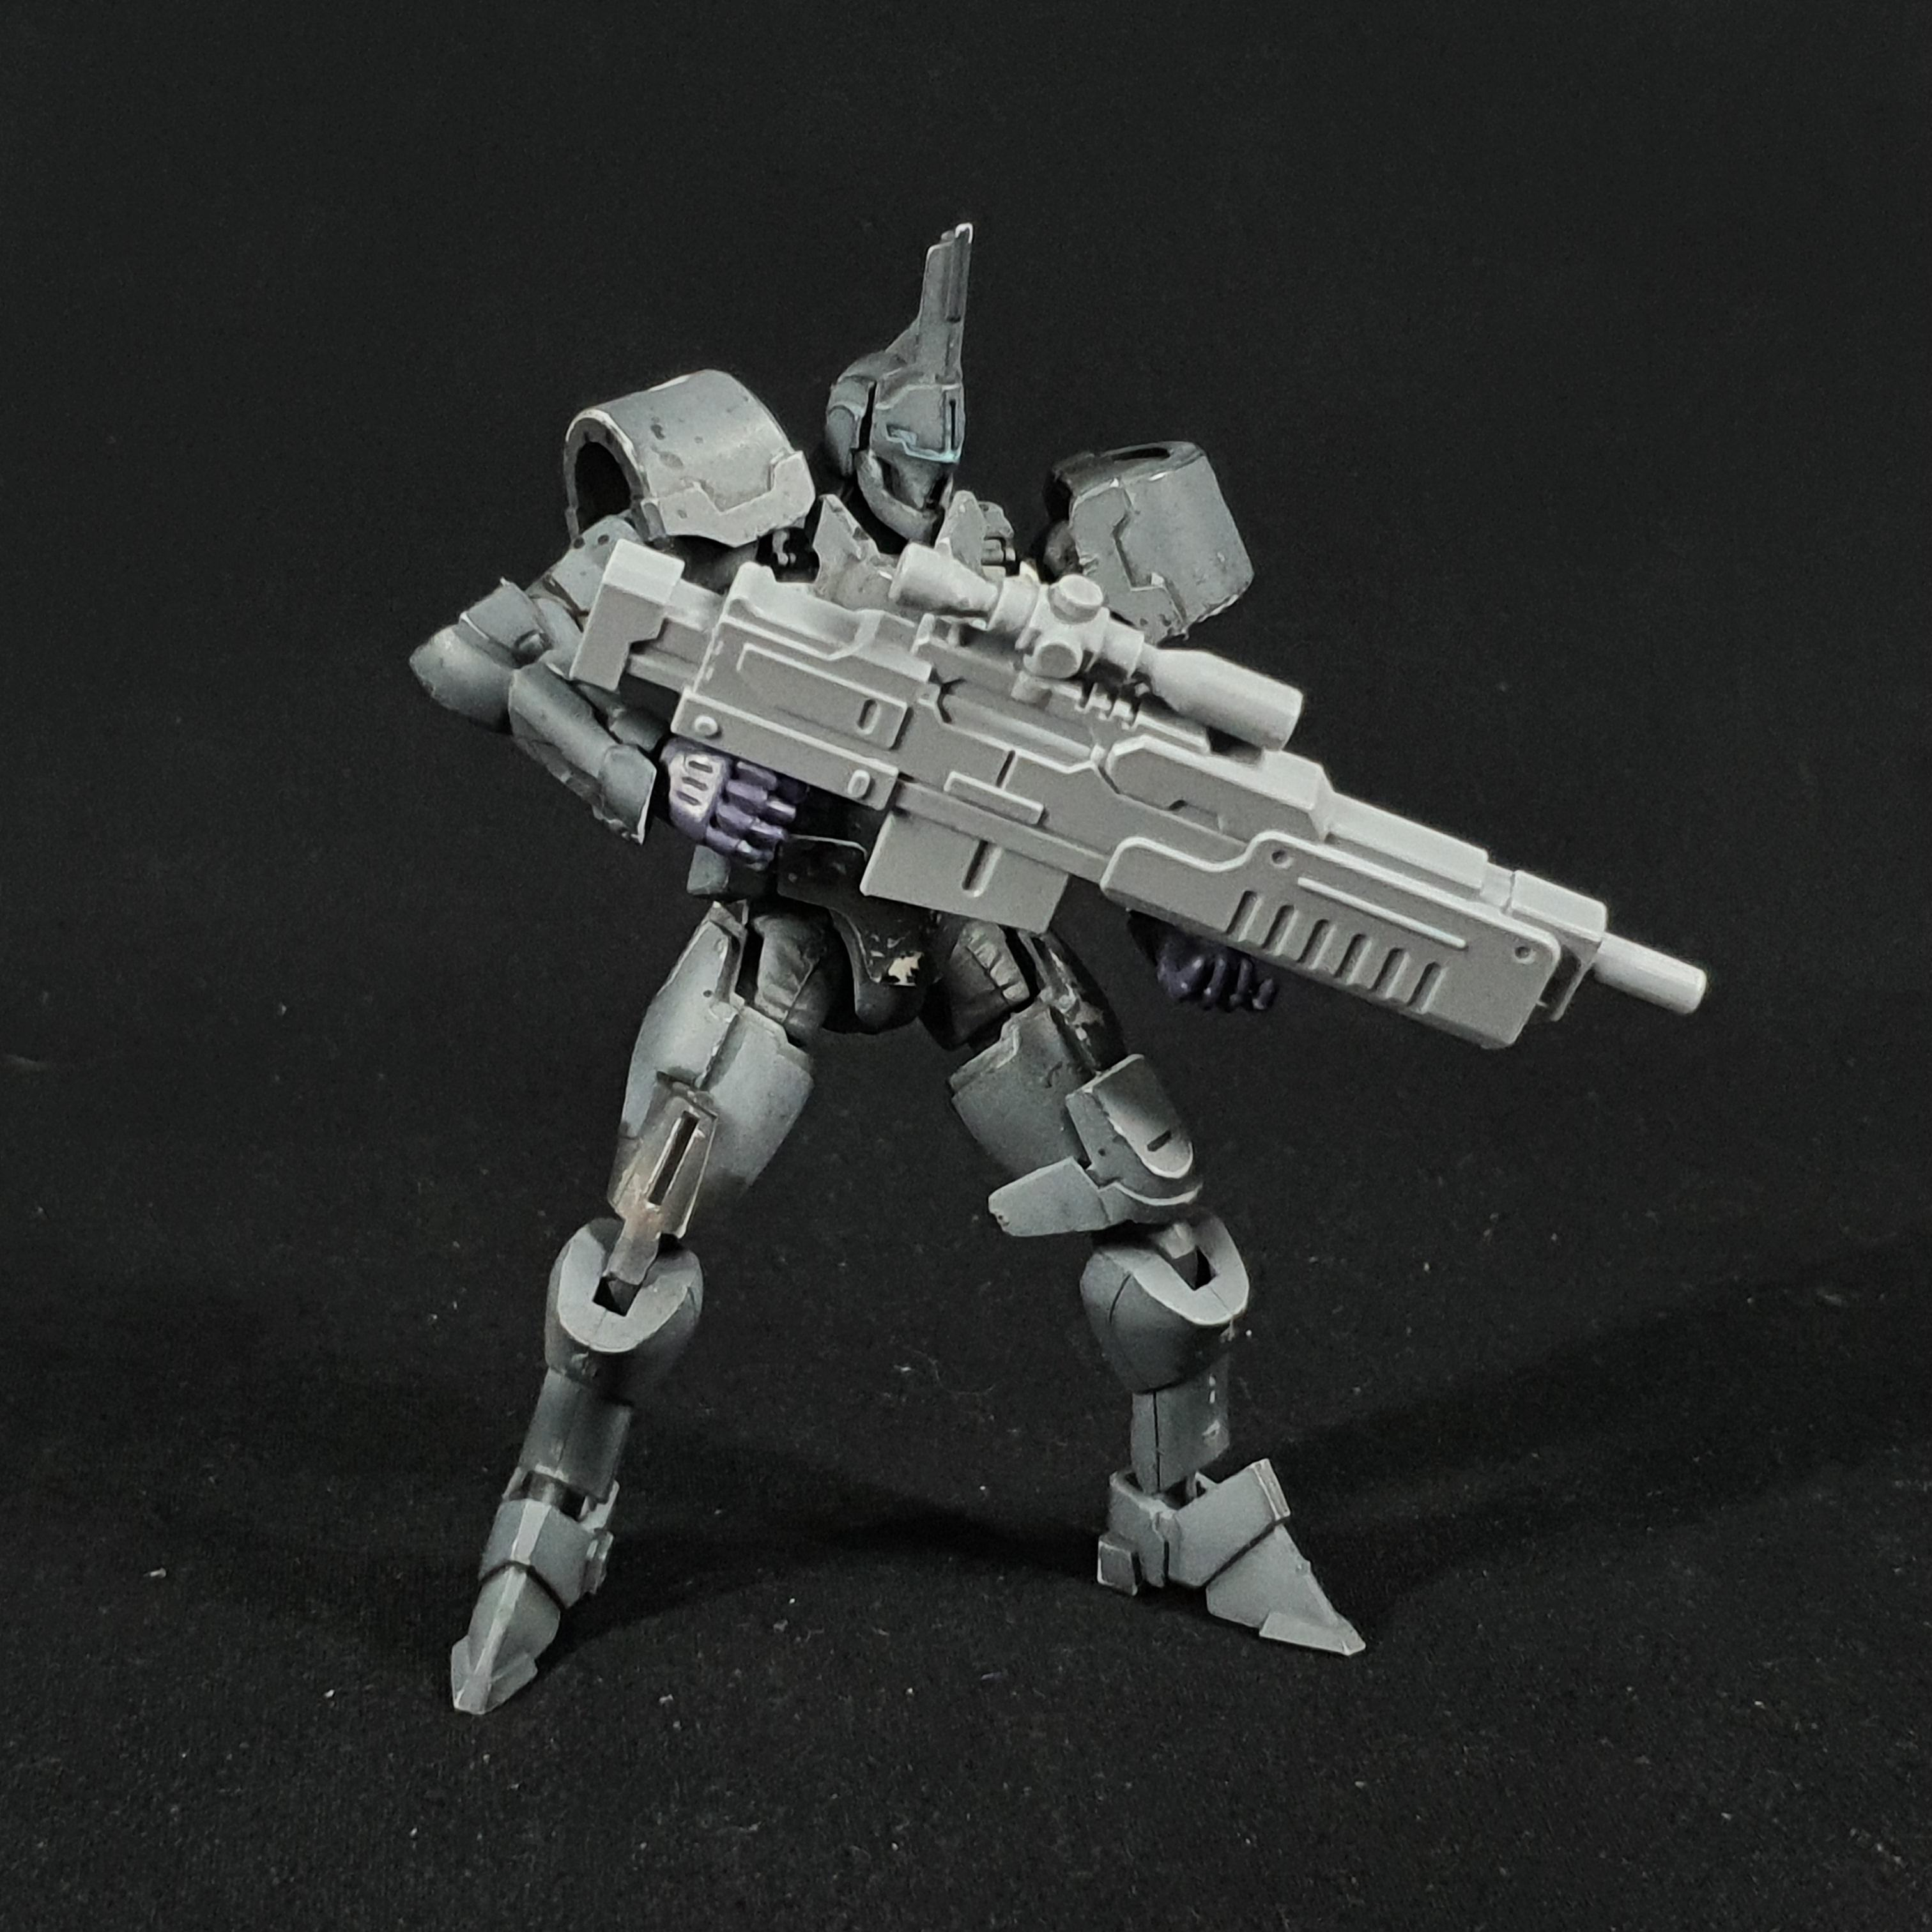 1/24 scale 'JUDICIUM' precision rifle